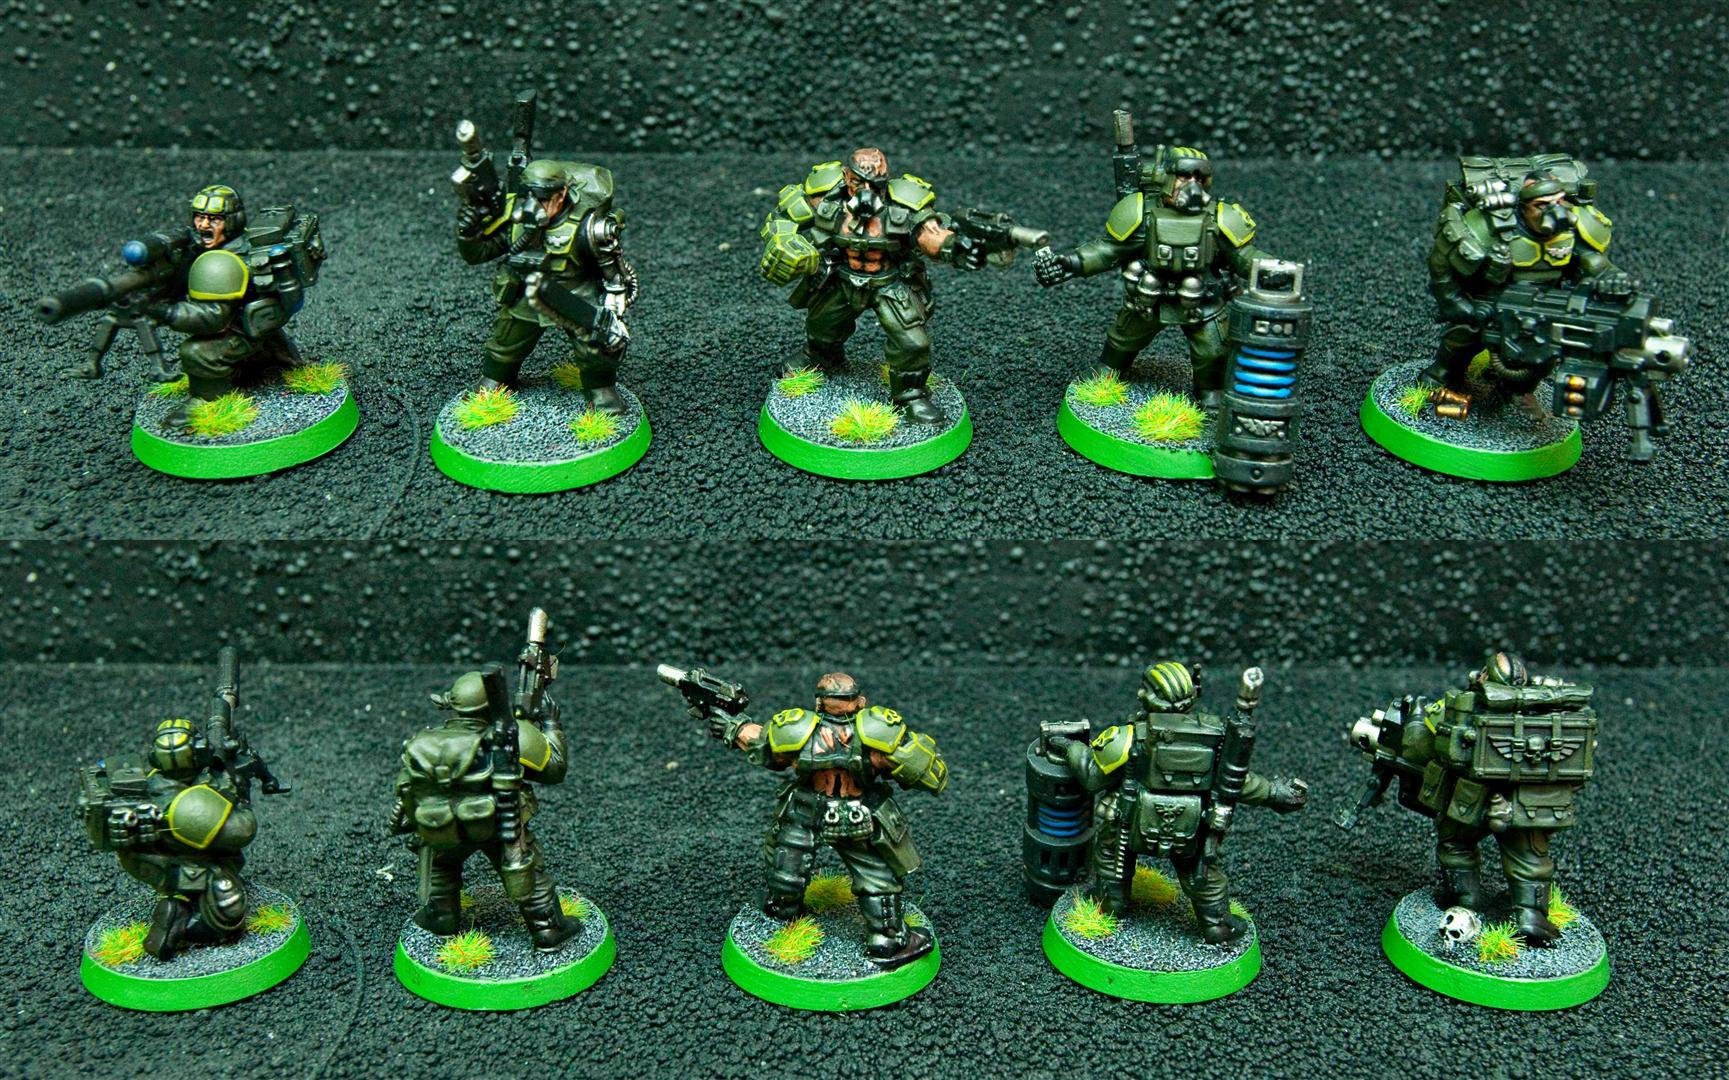 Bionics, Demolition Charge, Demolitions, Flamer, Guard, Guardsmen, Imperial Guard, Imperial Guard Veteran Squad, Meltabomb, Meltagun, Power Fist, Sgt, Sniper Rifle, Targeter, Veteran